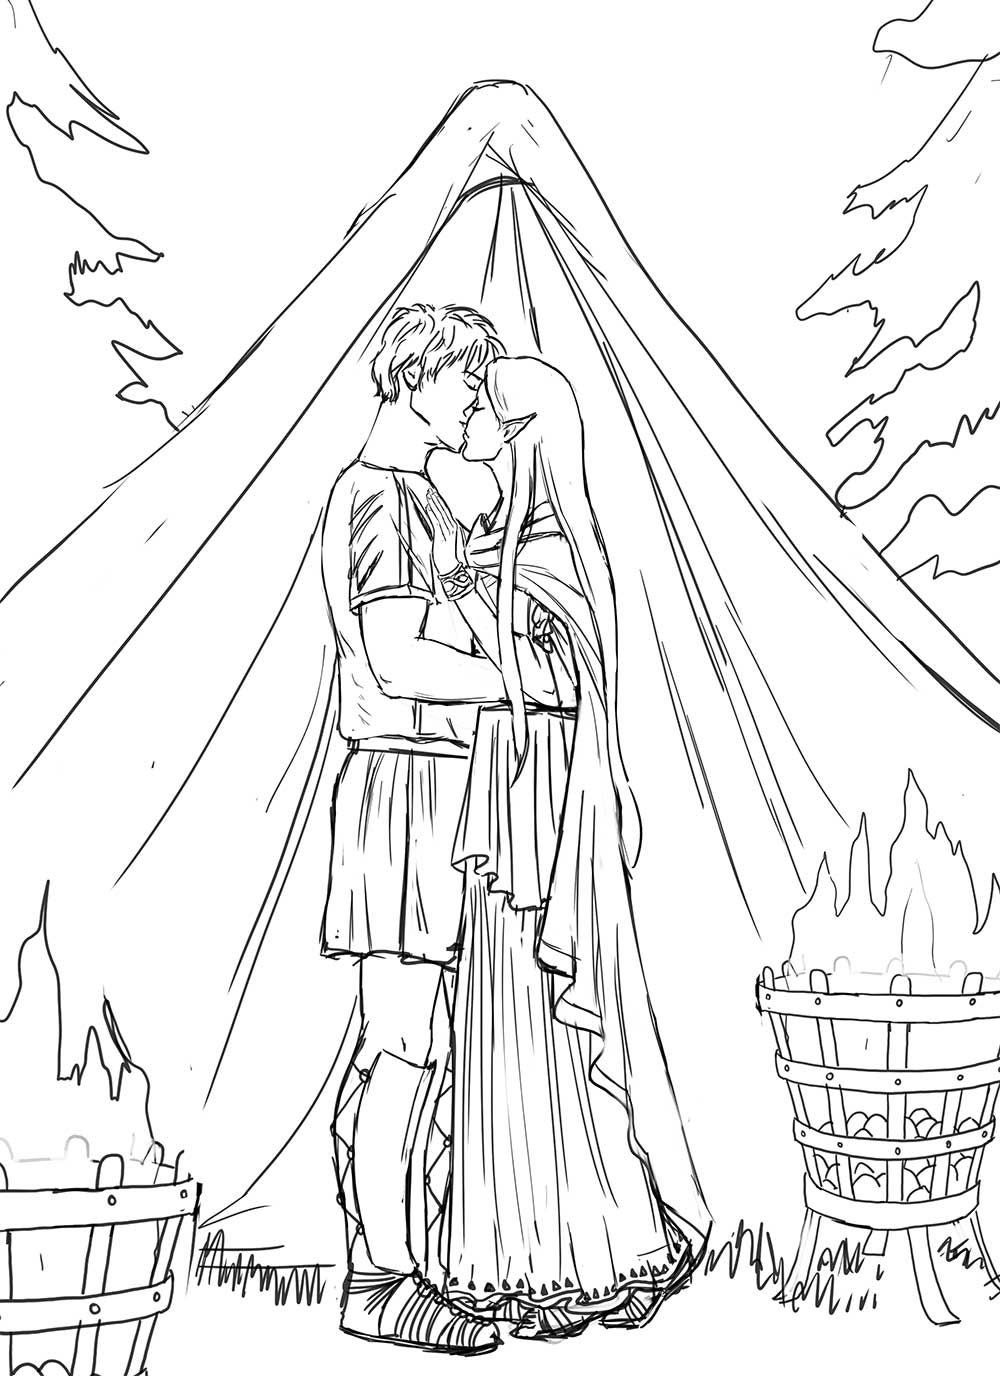 The lineart, including some changes the client requested like moving the biers, and adding a cloak. We decided on putting her hair down even though in an Ancient Roman setting this would have been a bit taboo! Not even a head scarf! Makes sense where it is in the story, plus fantasy! She's an elf!